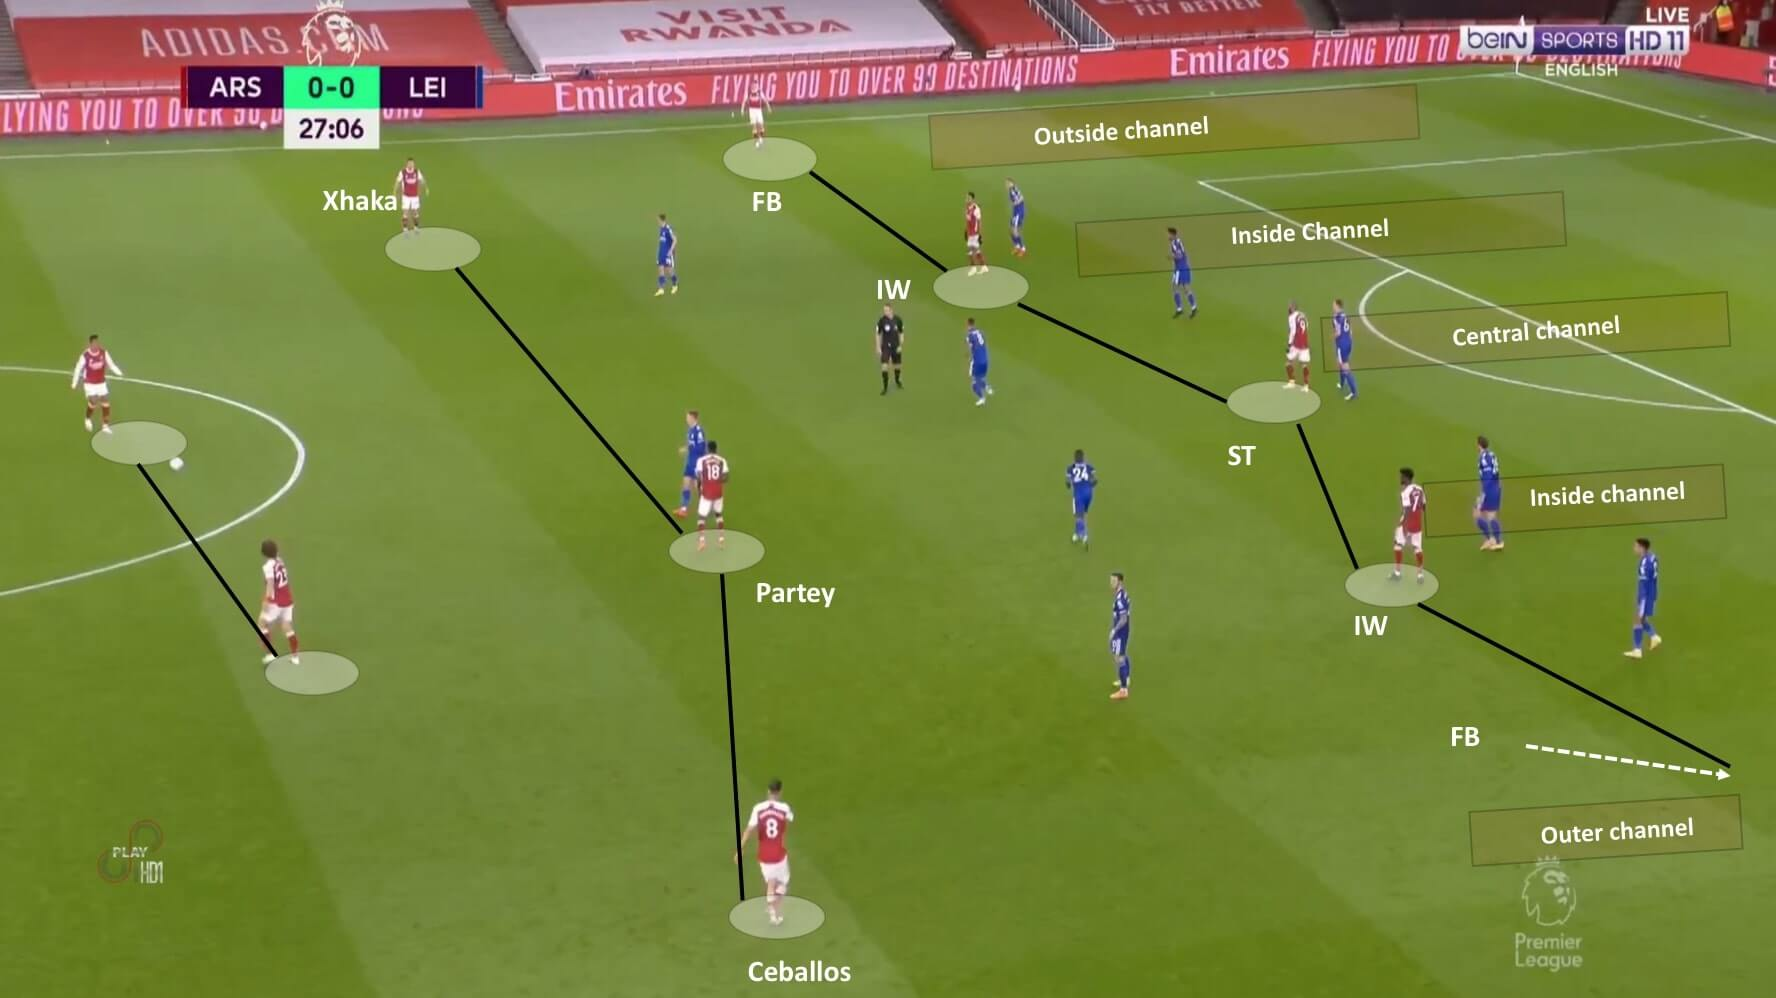 Premier League 2020/21: Arsenal vs Leicester City - tactical analysis tactics